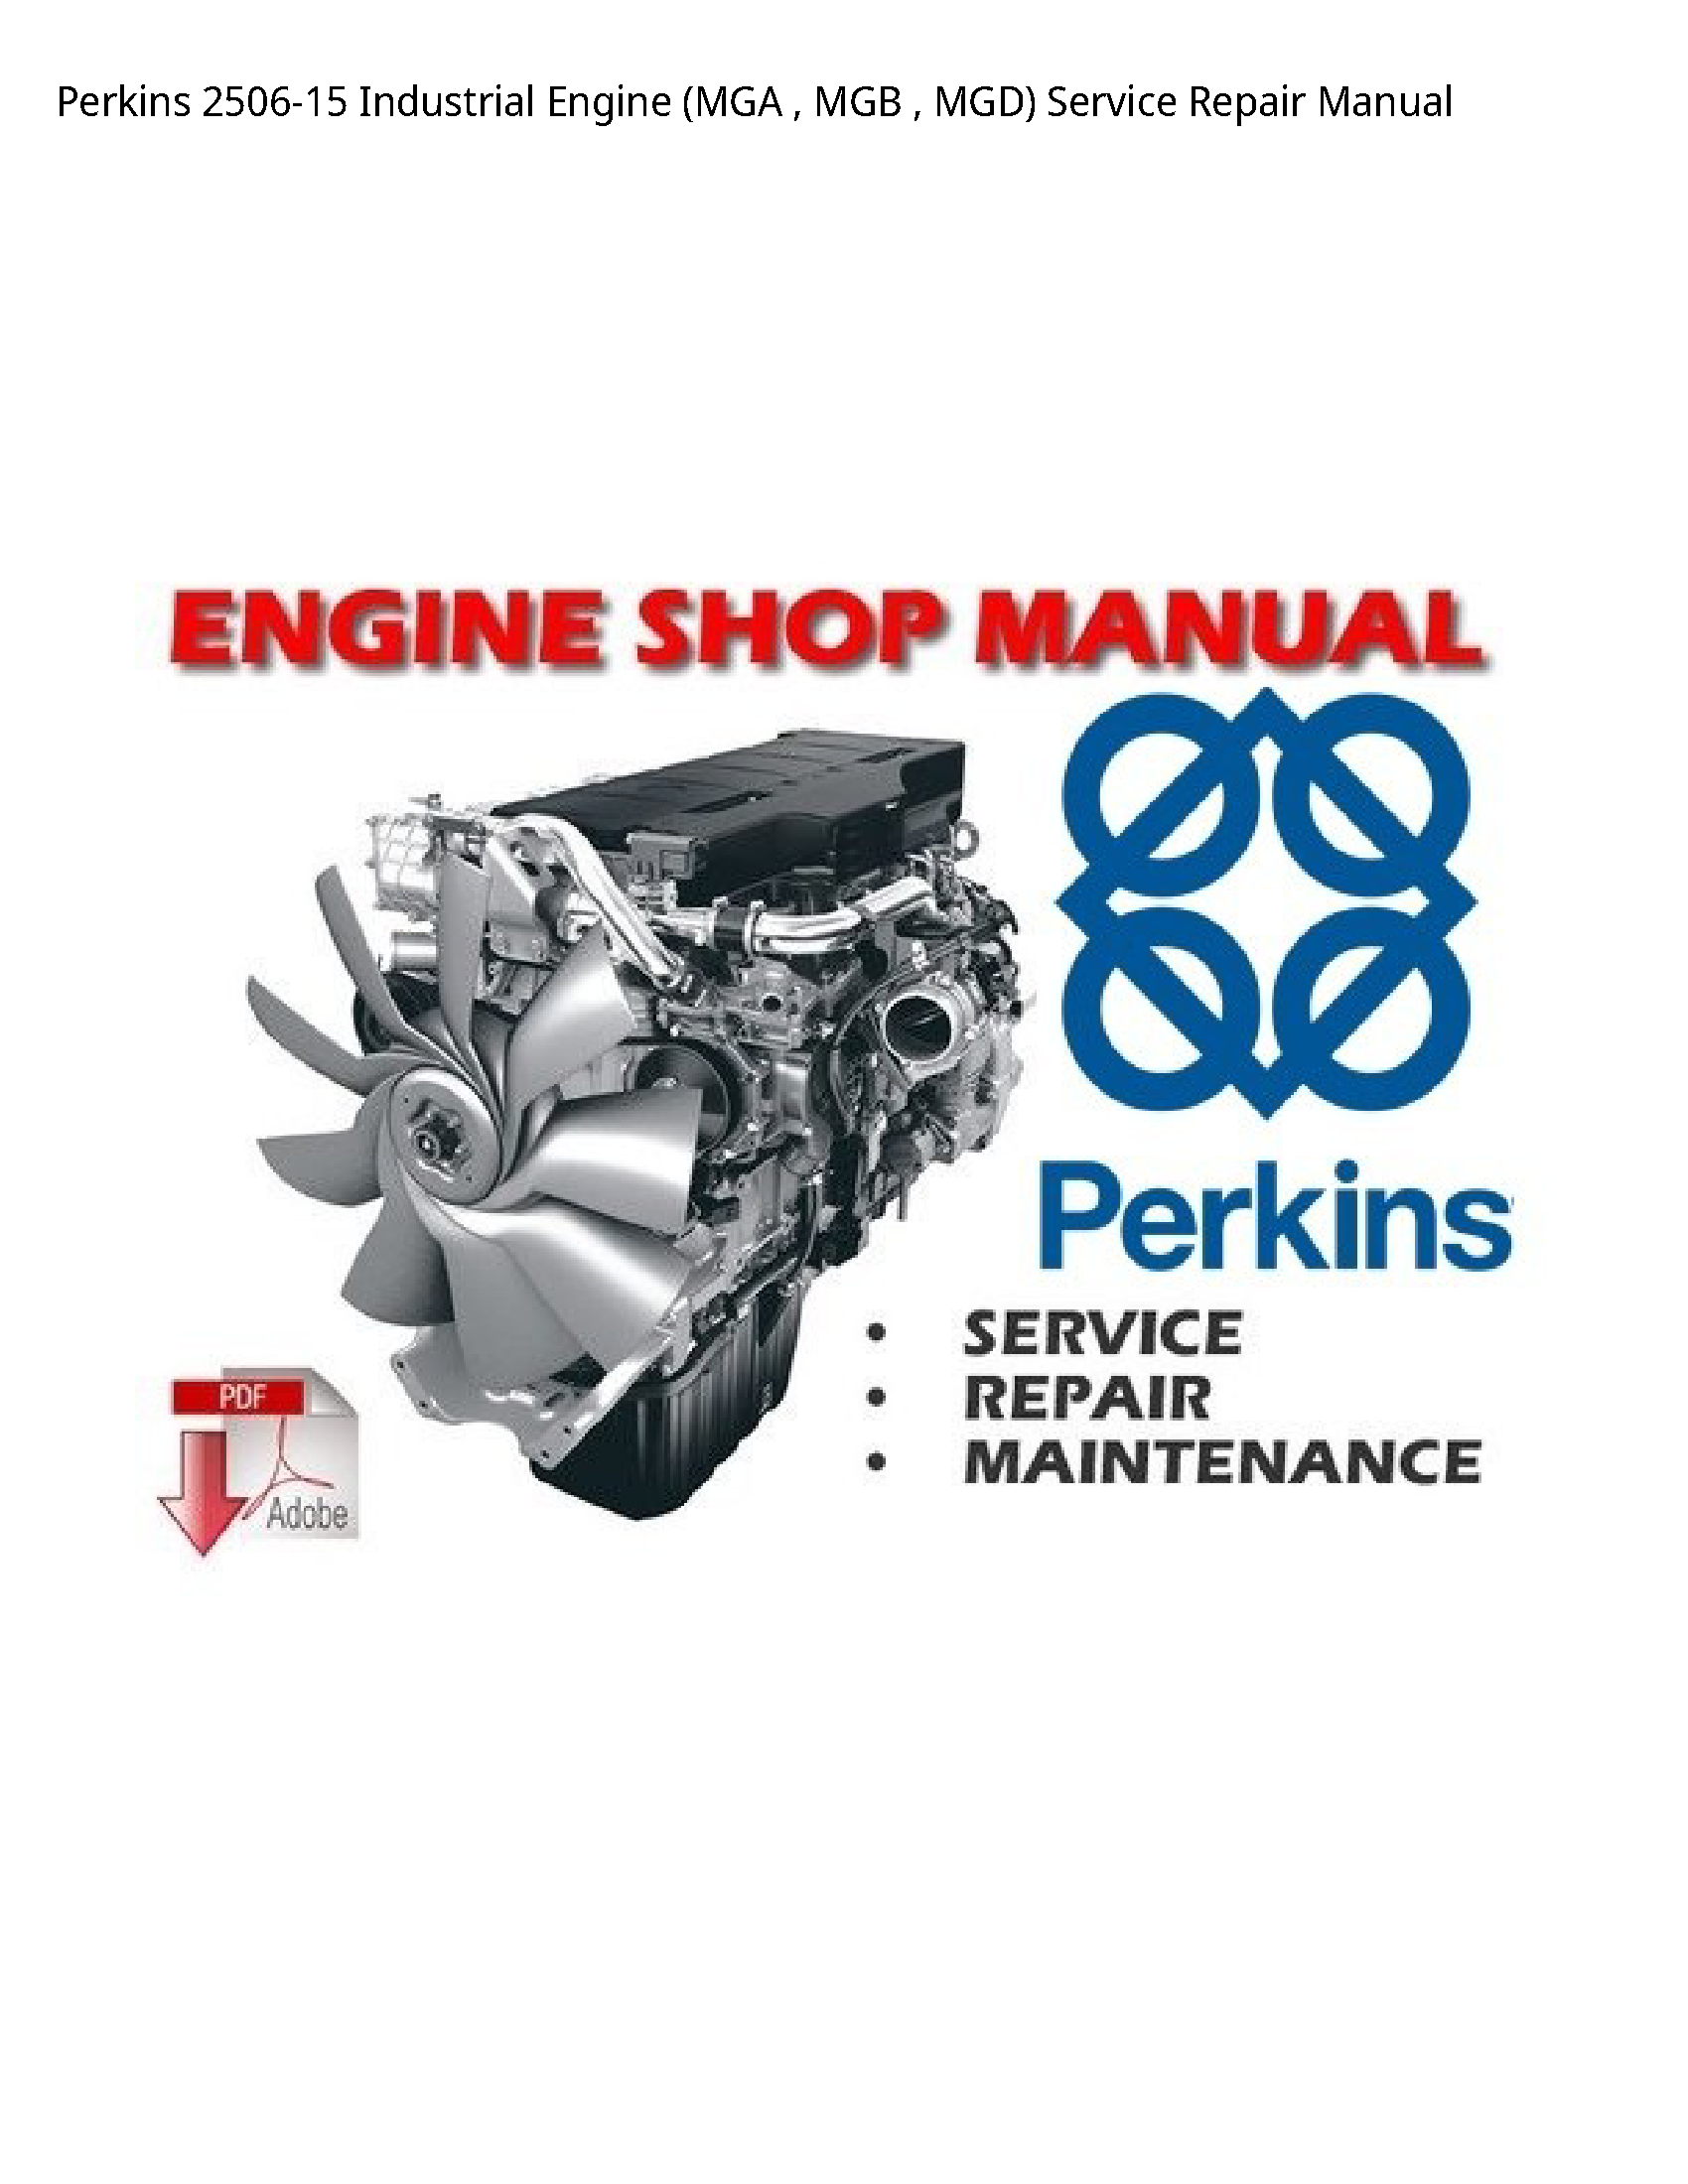 Perkins 2506-15 Industrial Engine (MGA MGB MGD) manual